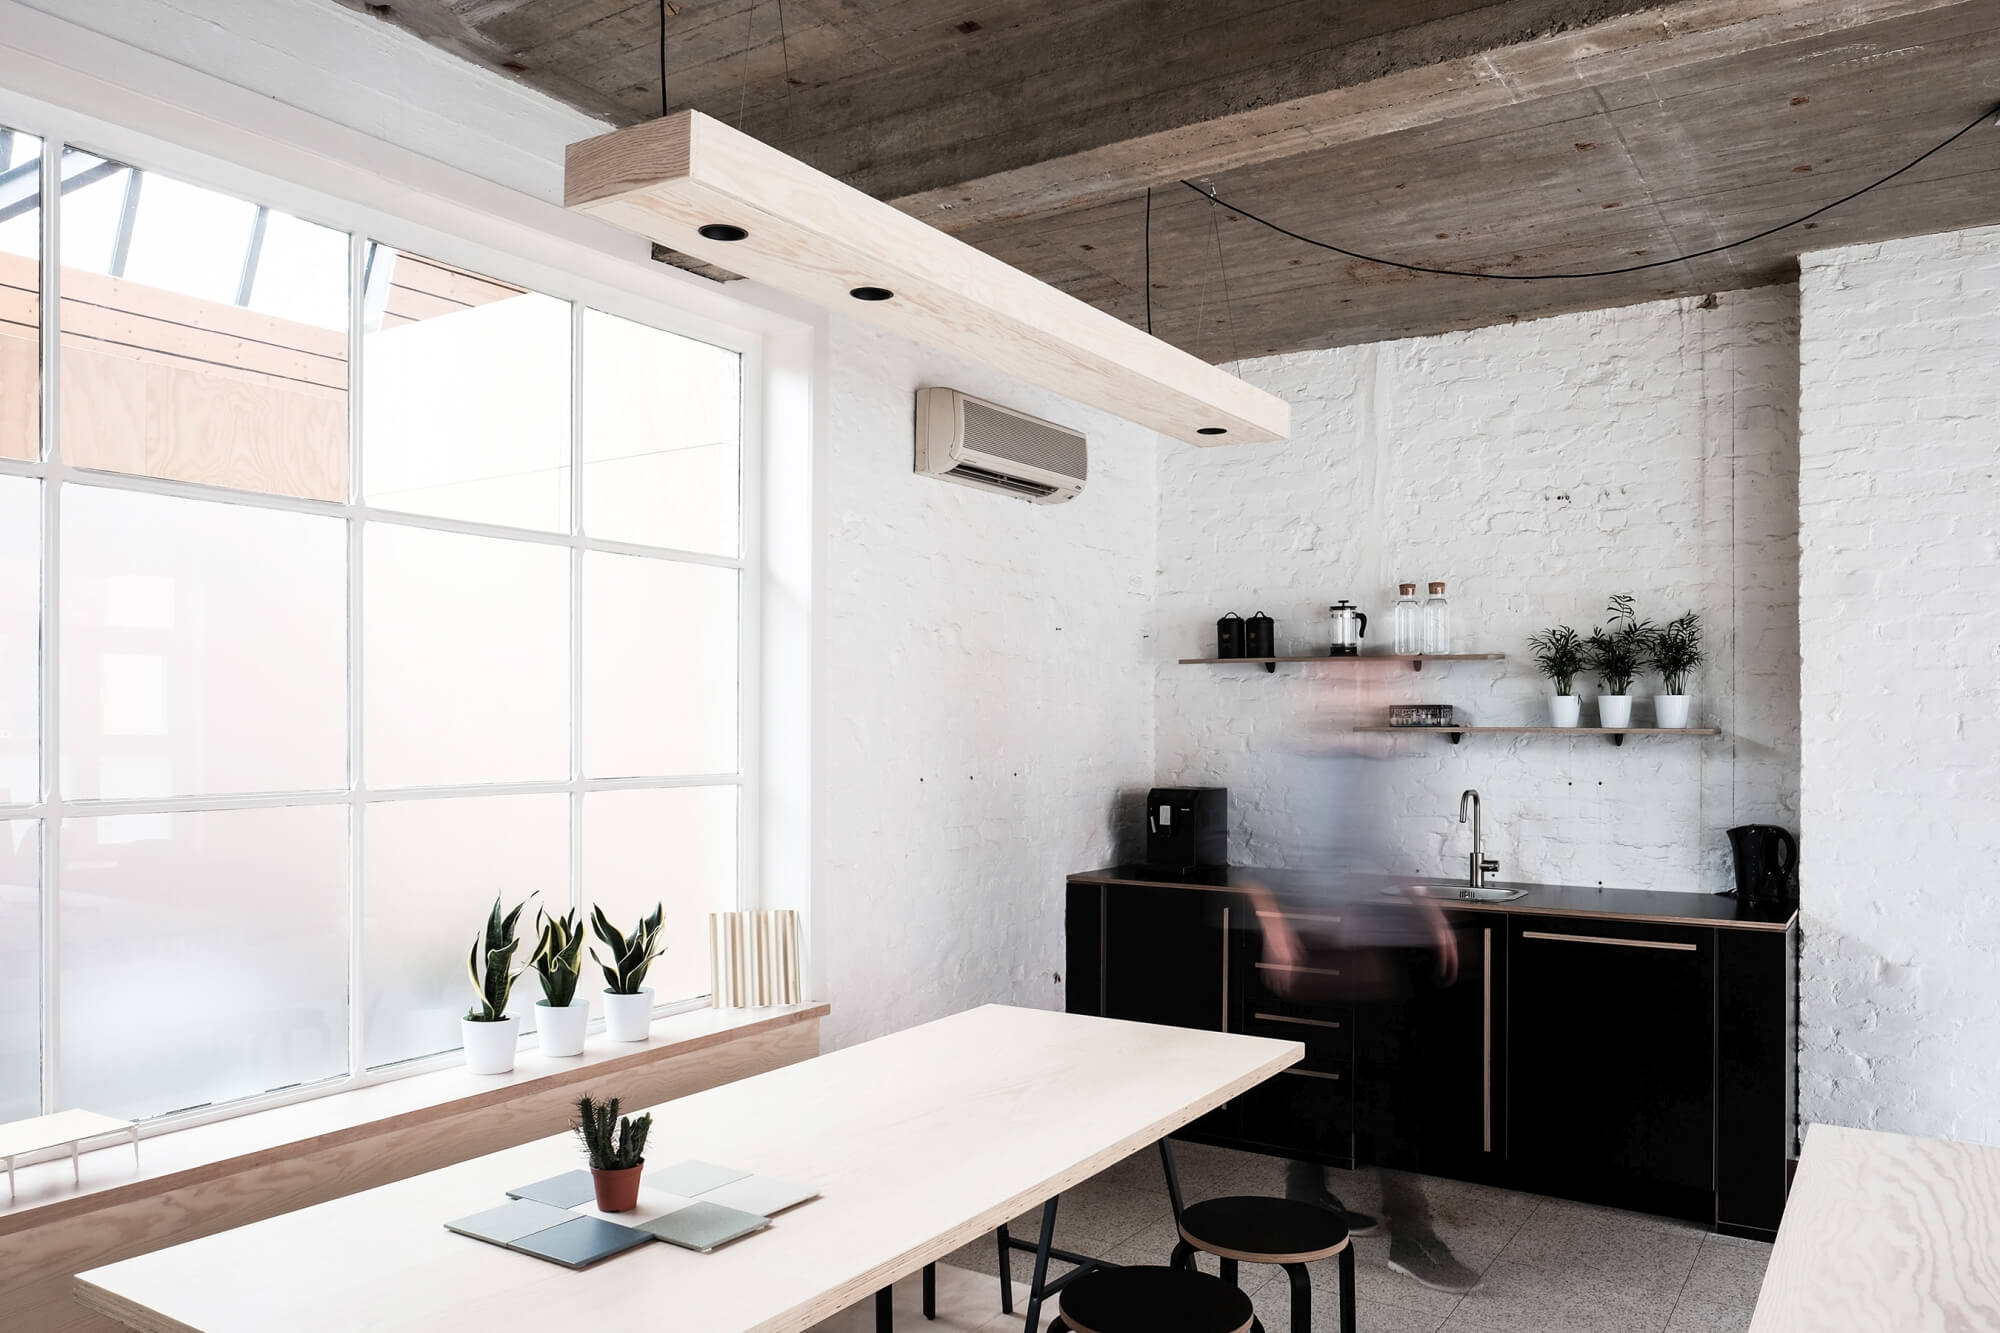 Architect office with white brick, plywood, and bold accents.